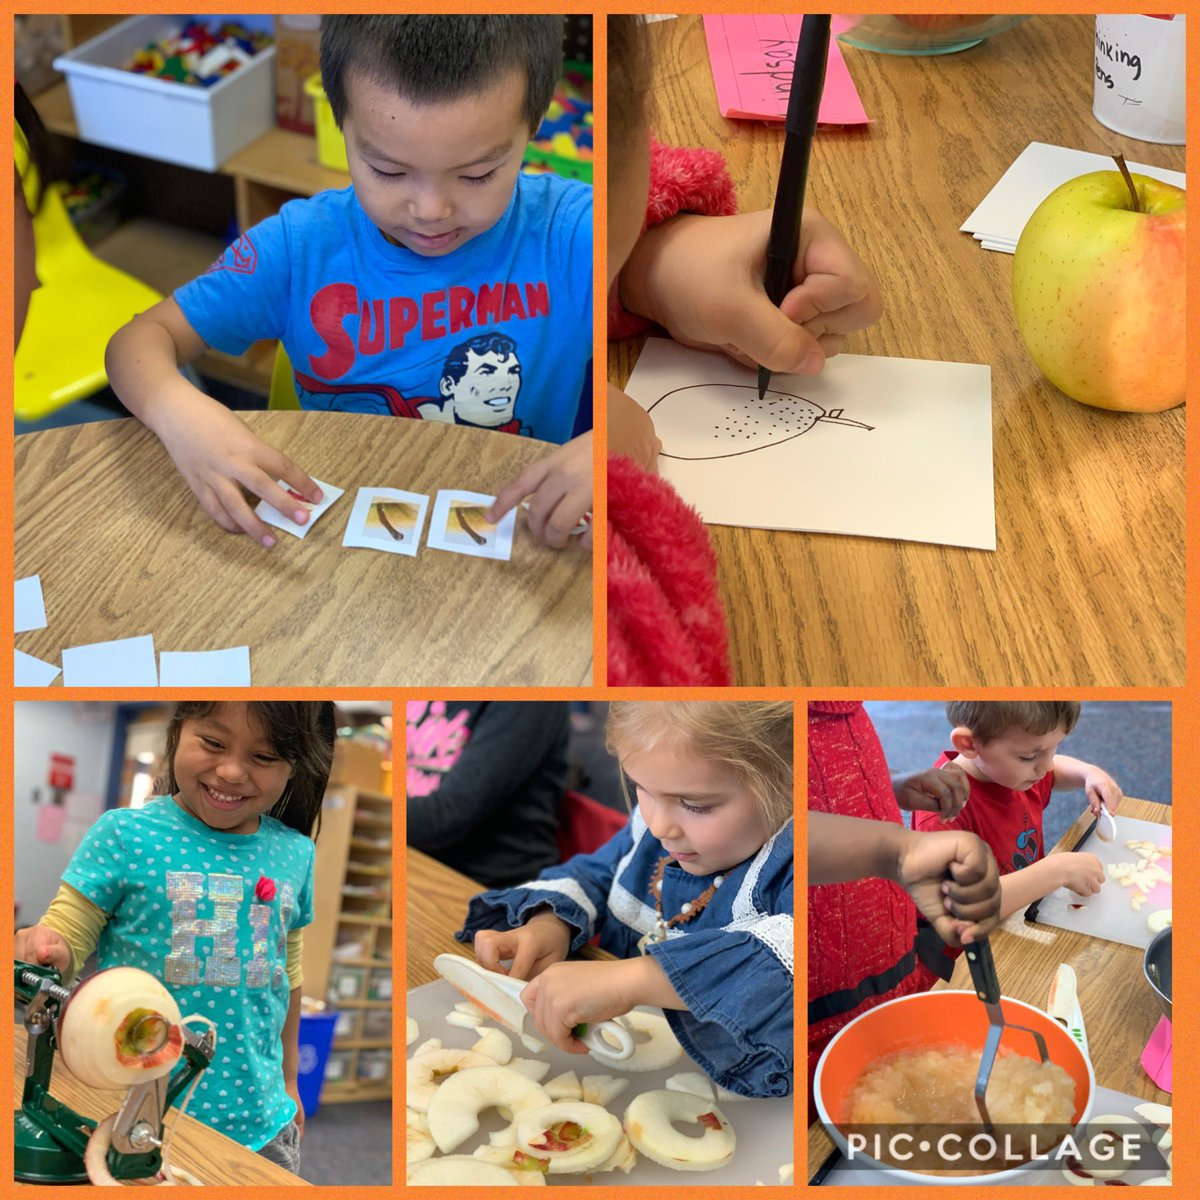 lots-of-fun-making-a-healthy-and-delicious-snack-with-k-today-campbellaps-https-t-co-pjgat6t8uf